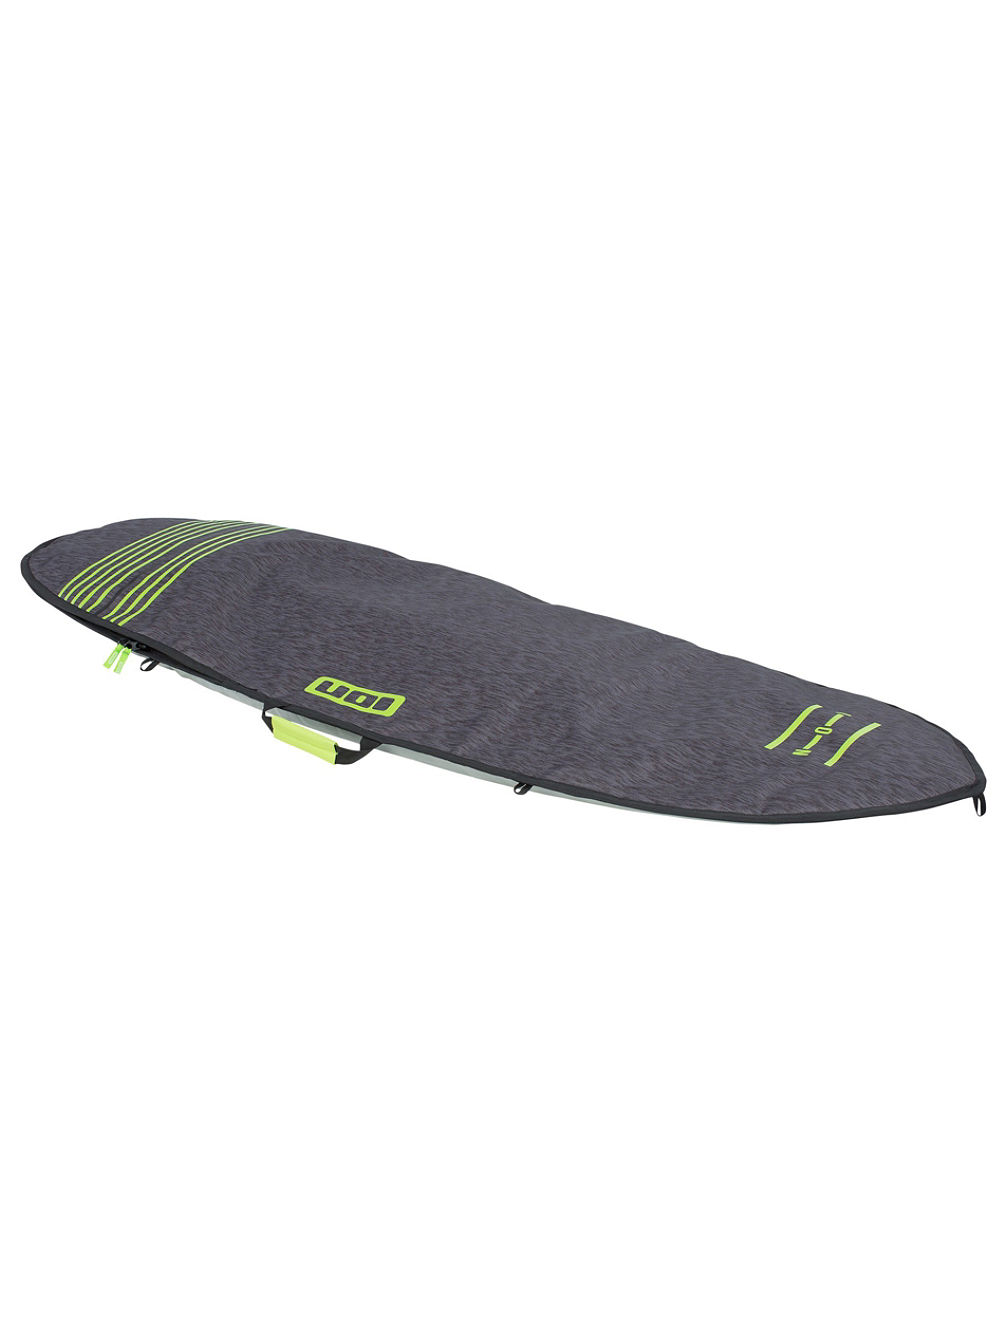 Surf Core 5'6 Boardbag